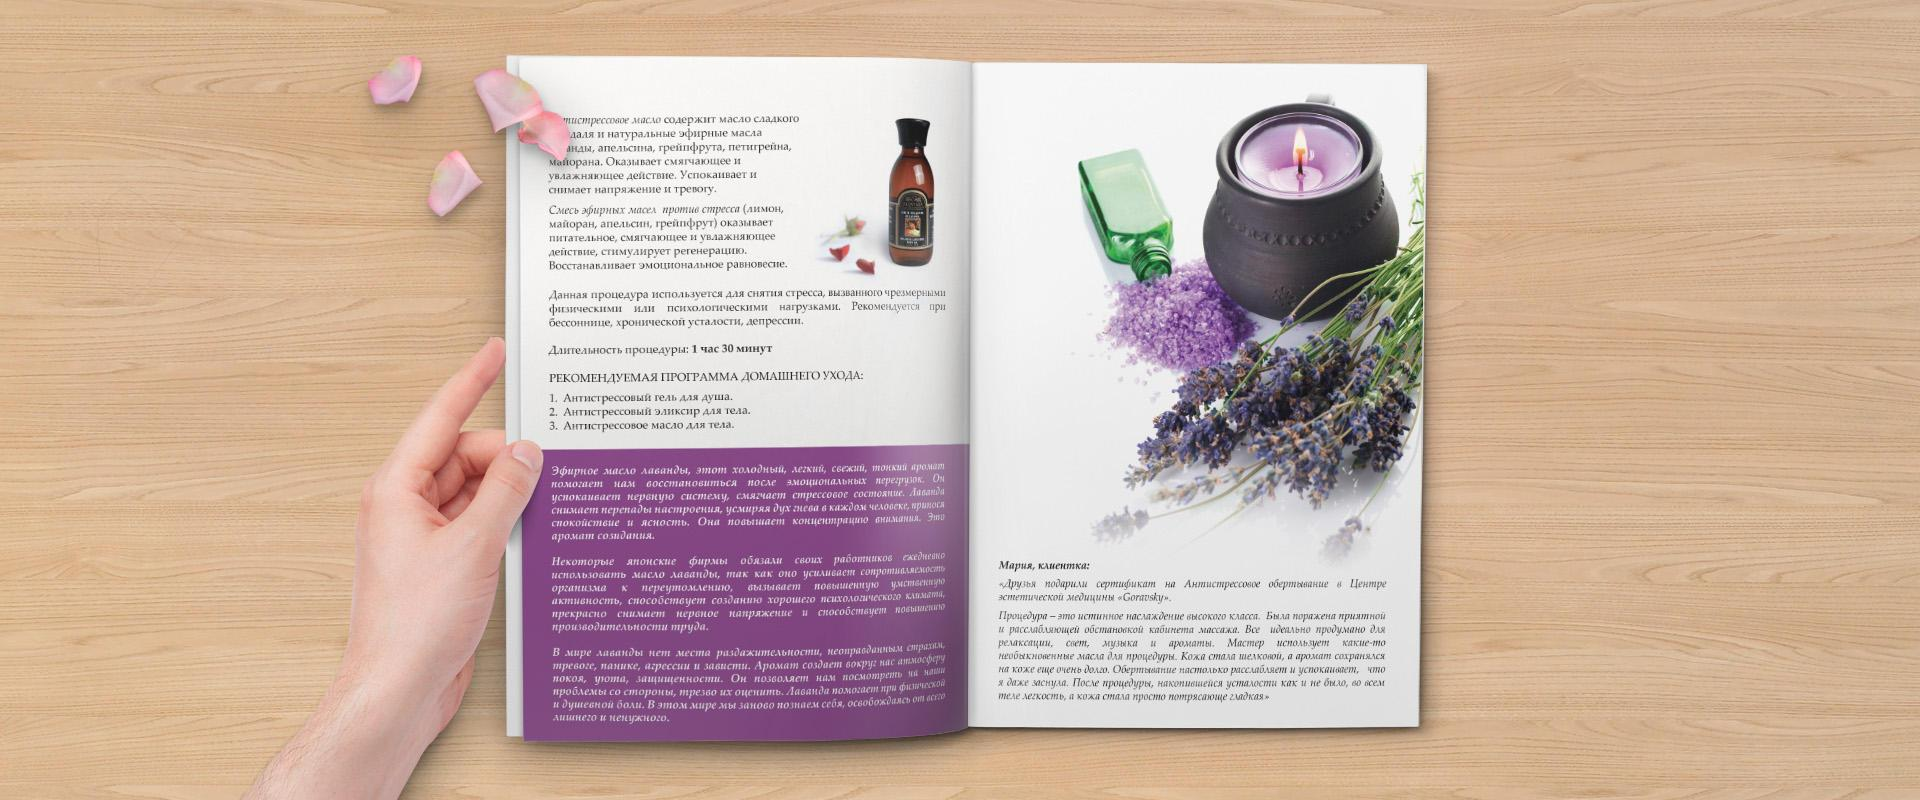 Creating каталога for the medical company